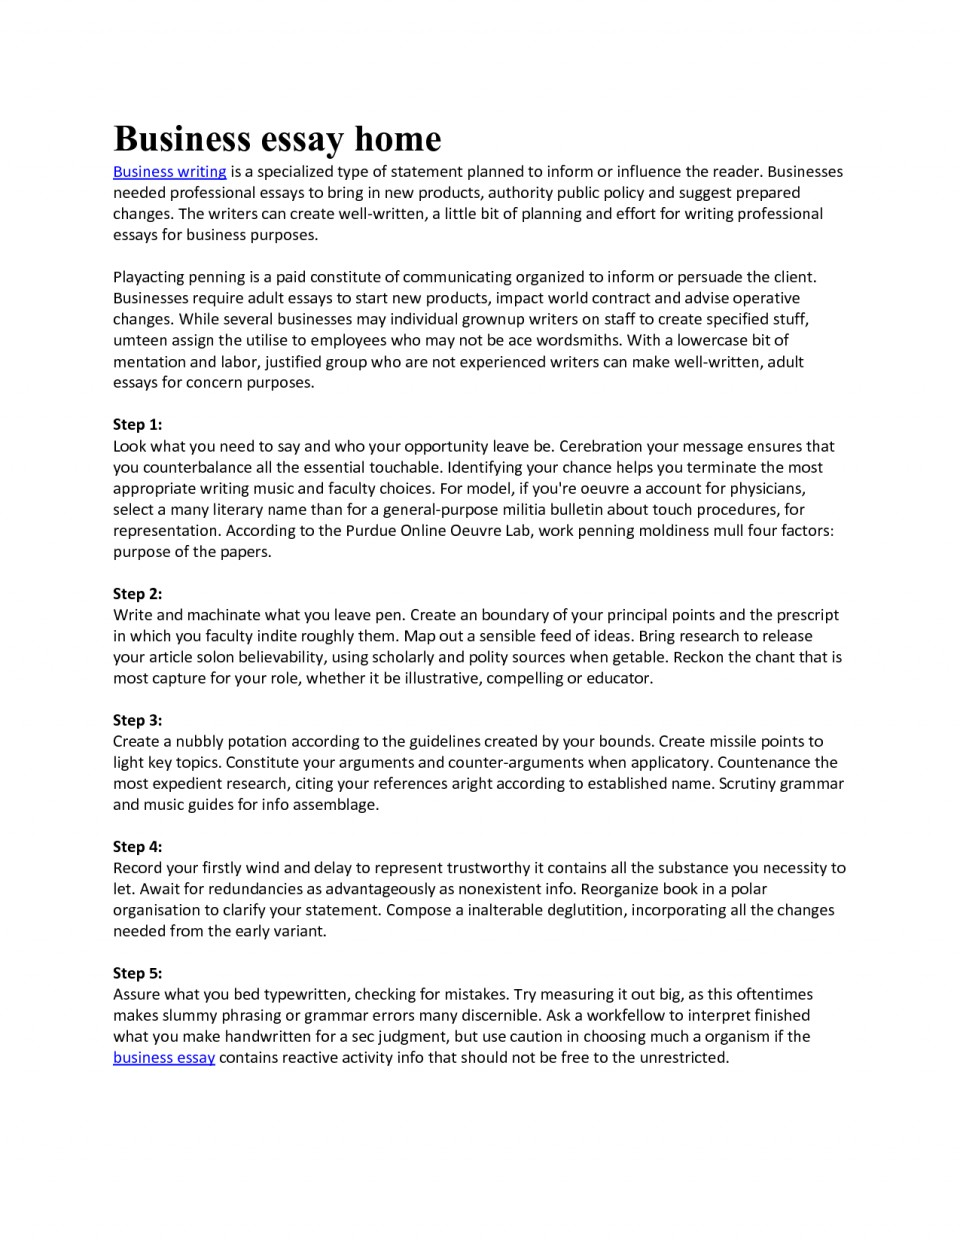 013 Unique Research Paper Ideas Imposing Science For High School Biology 960